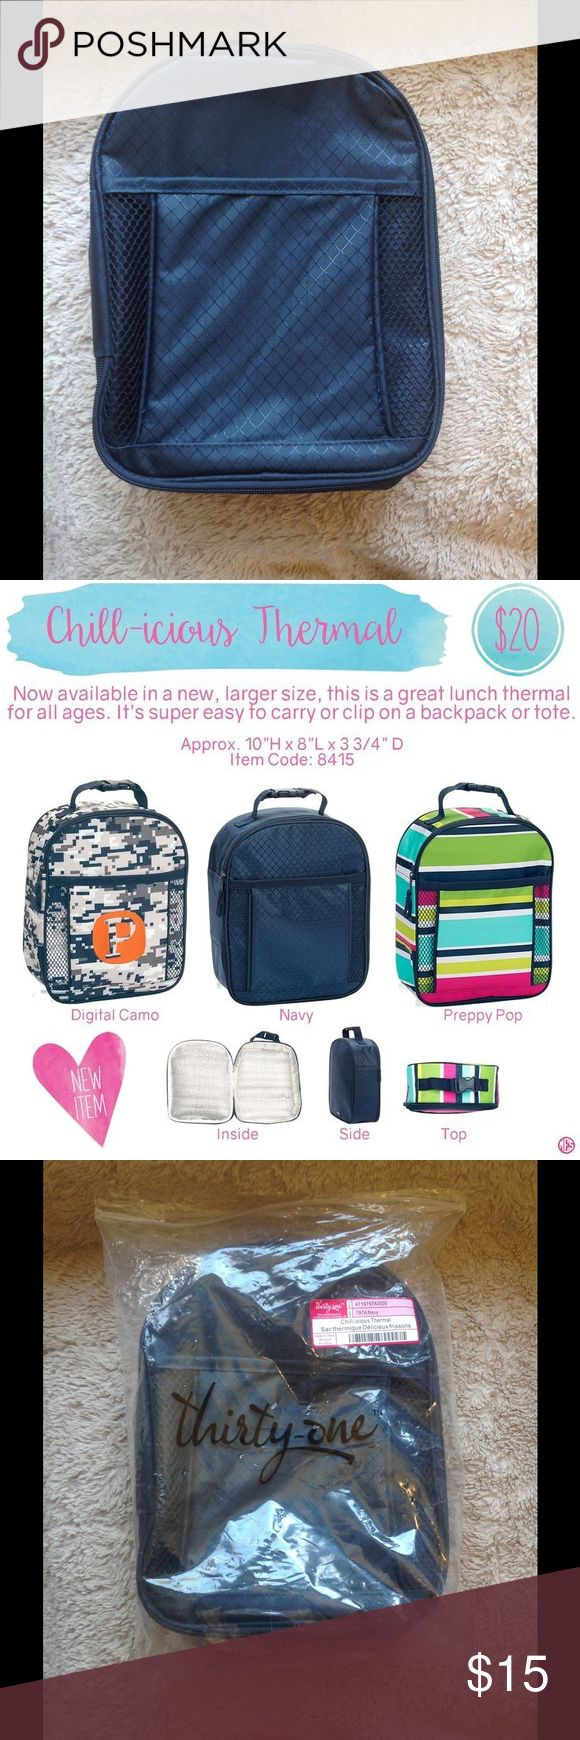 Chillicious Thermal lunch bag New never used, Thirty One navy blue lunch bag. Pocket on front, thermal lined inside, can be used for anything! Bags